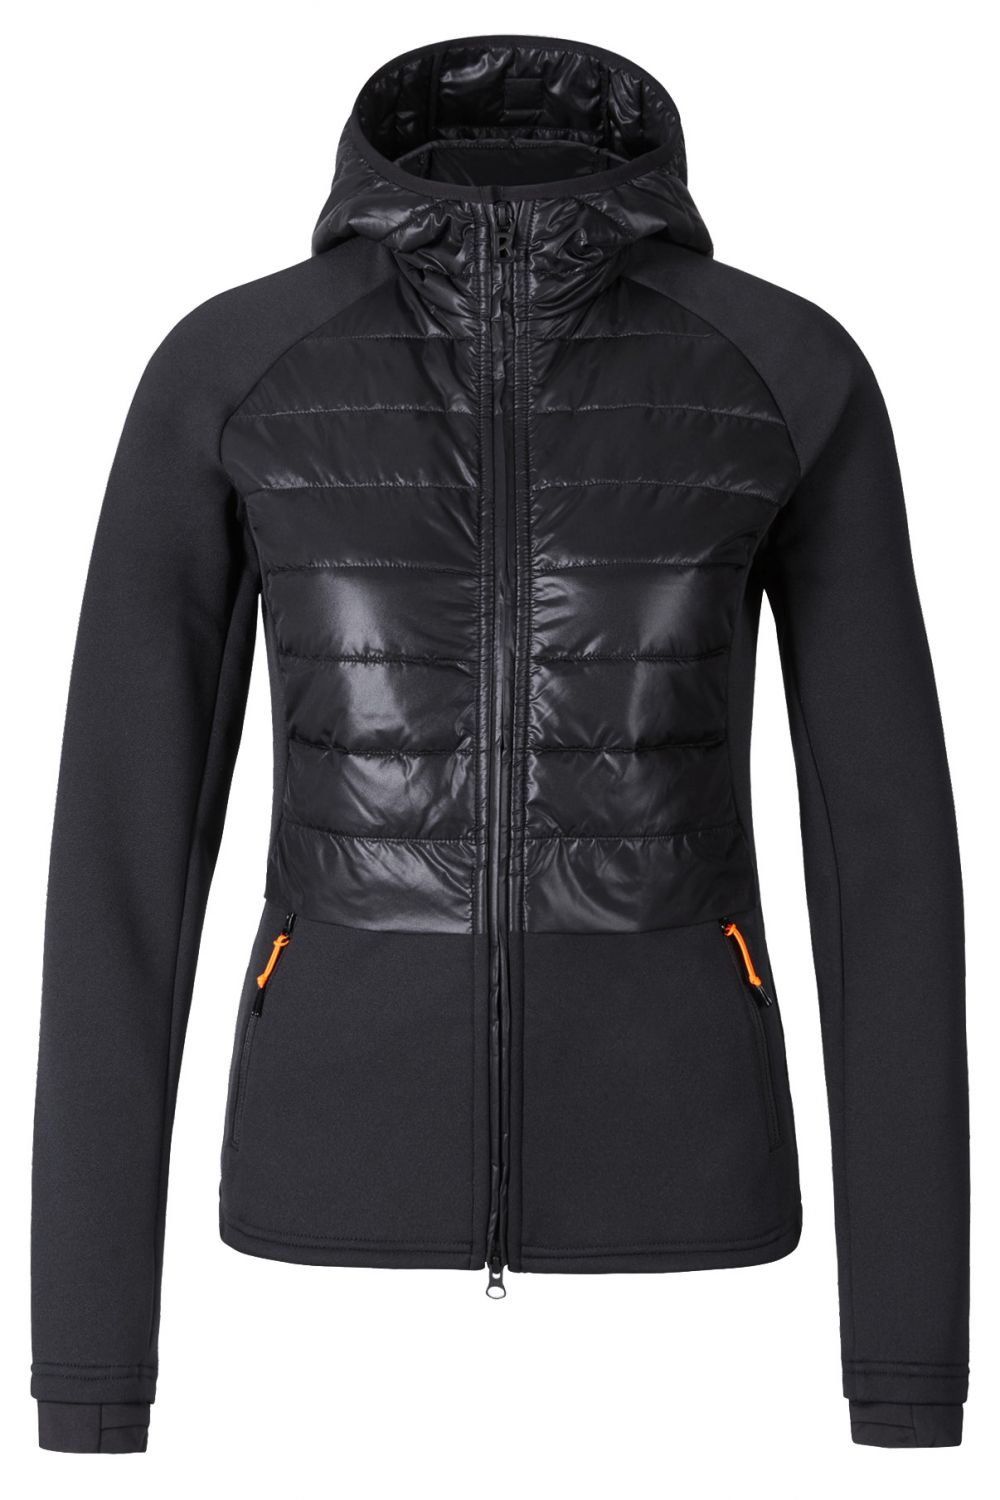 Schwarz Damen Rikka Hybrid Jacke Ice Fireamp; Kc1JFTl